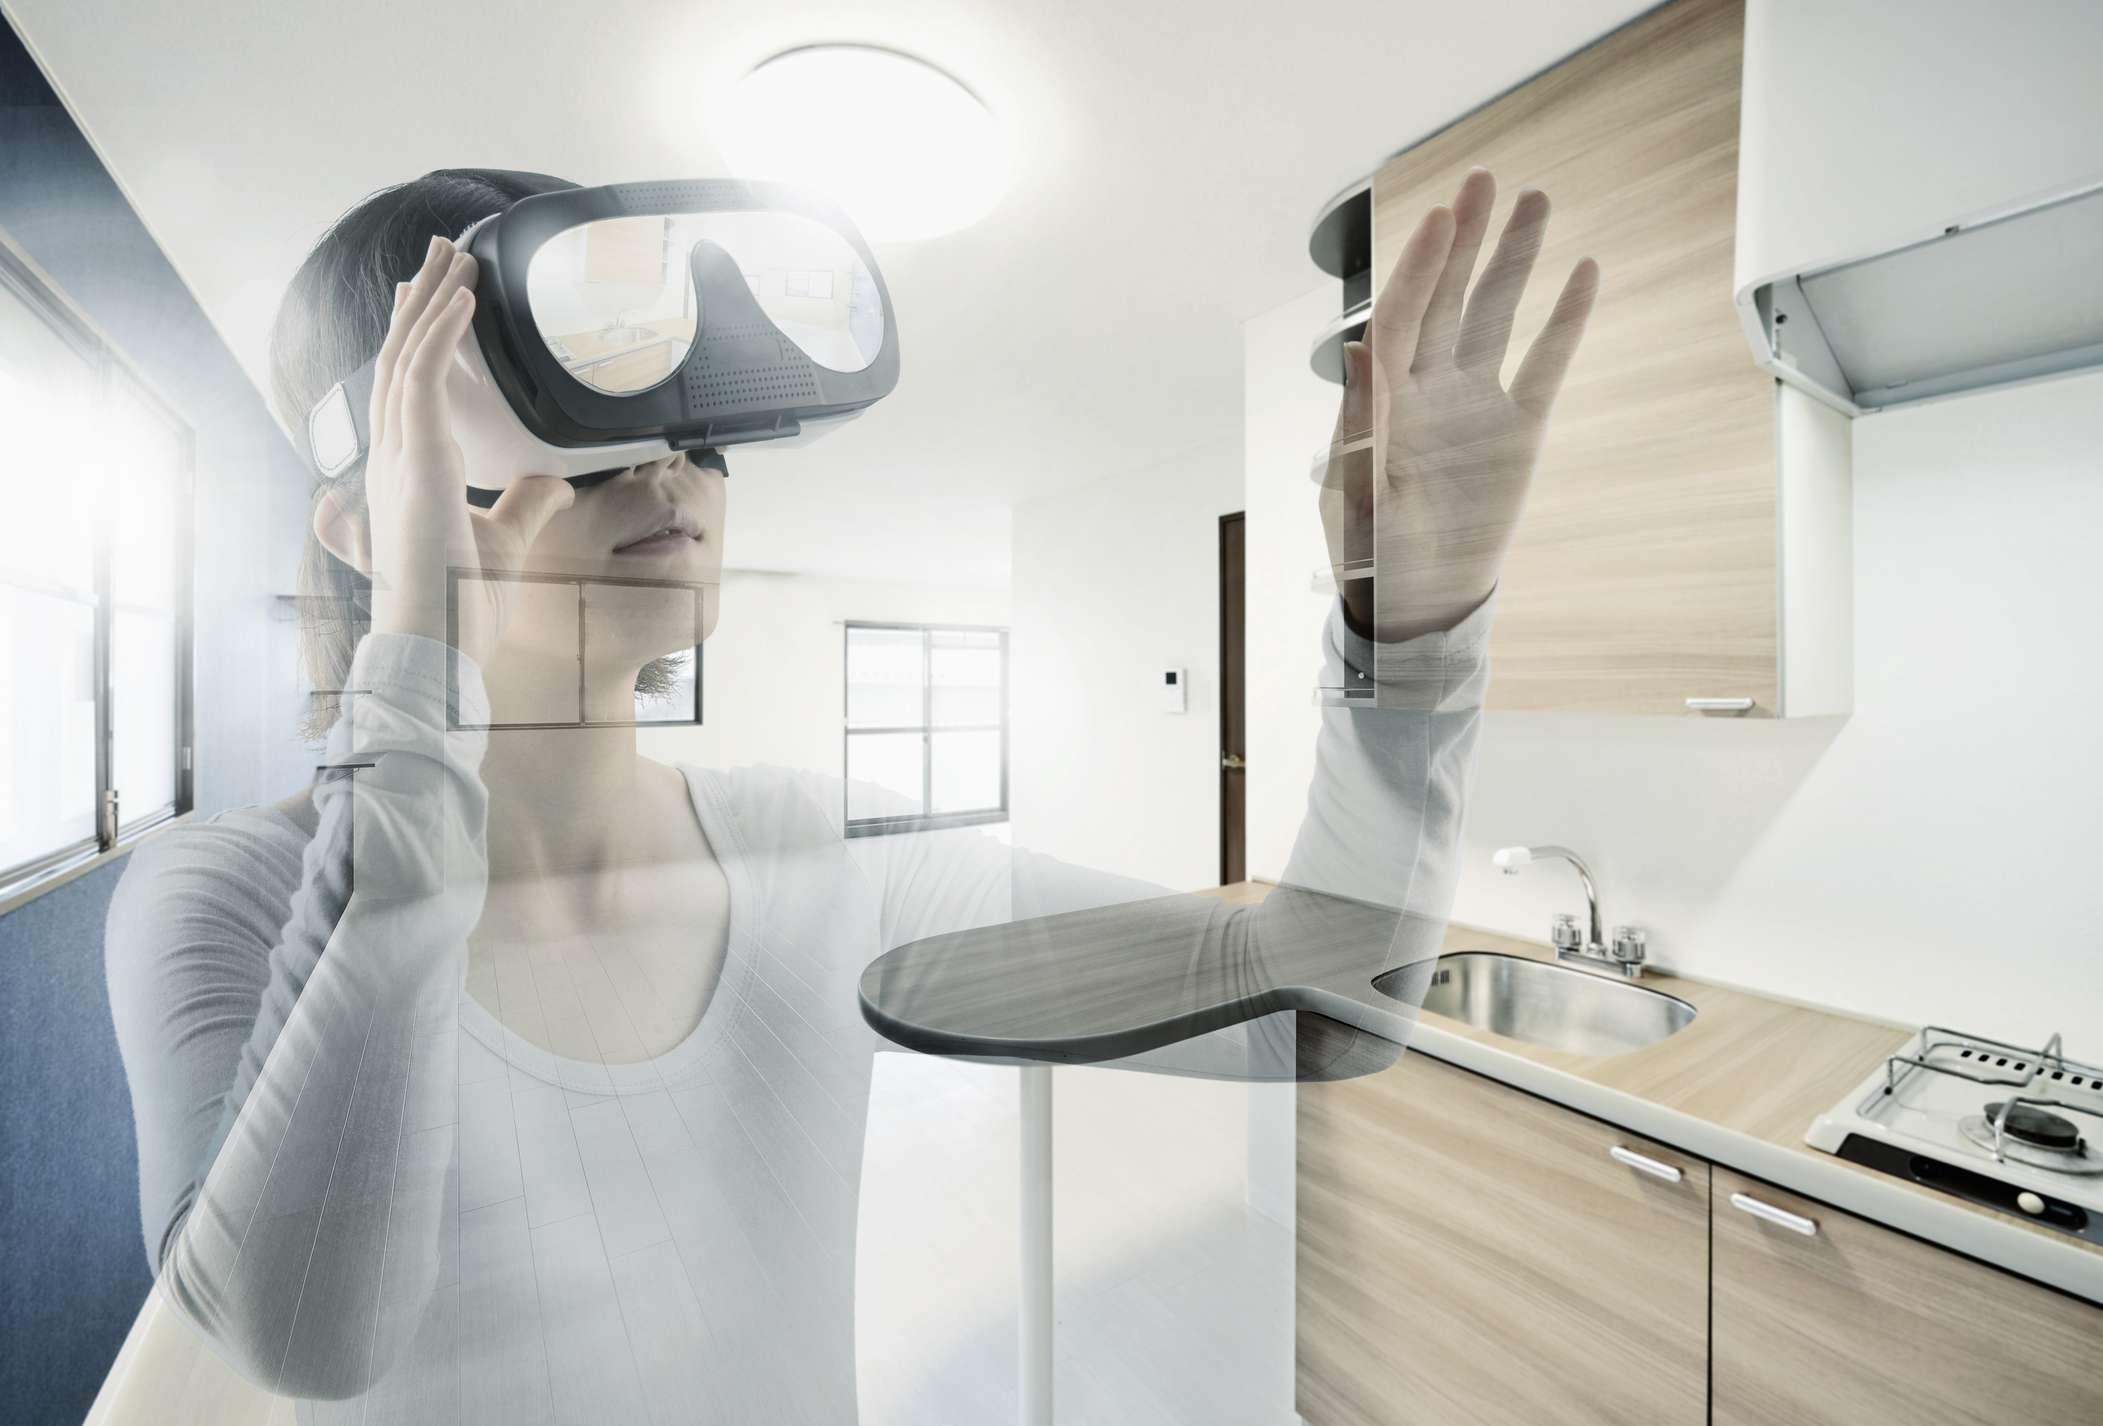 Someone wearing a virtual reality headset with and empty apartment overlayed on the image.